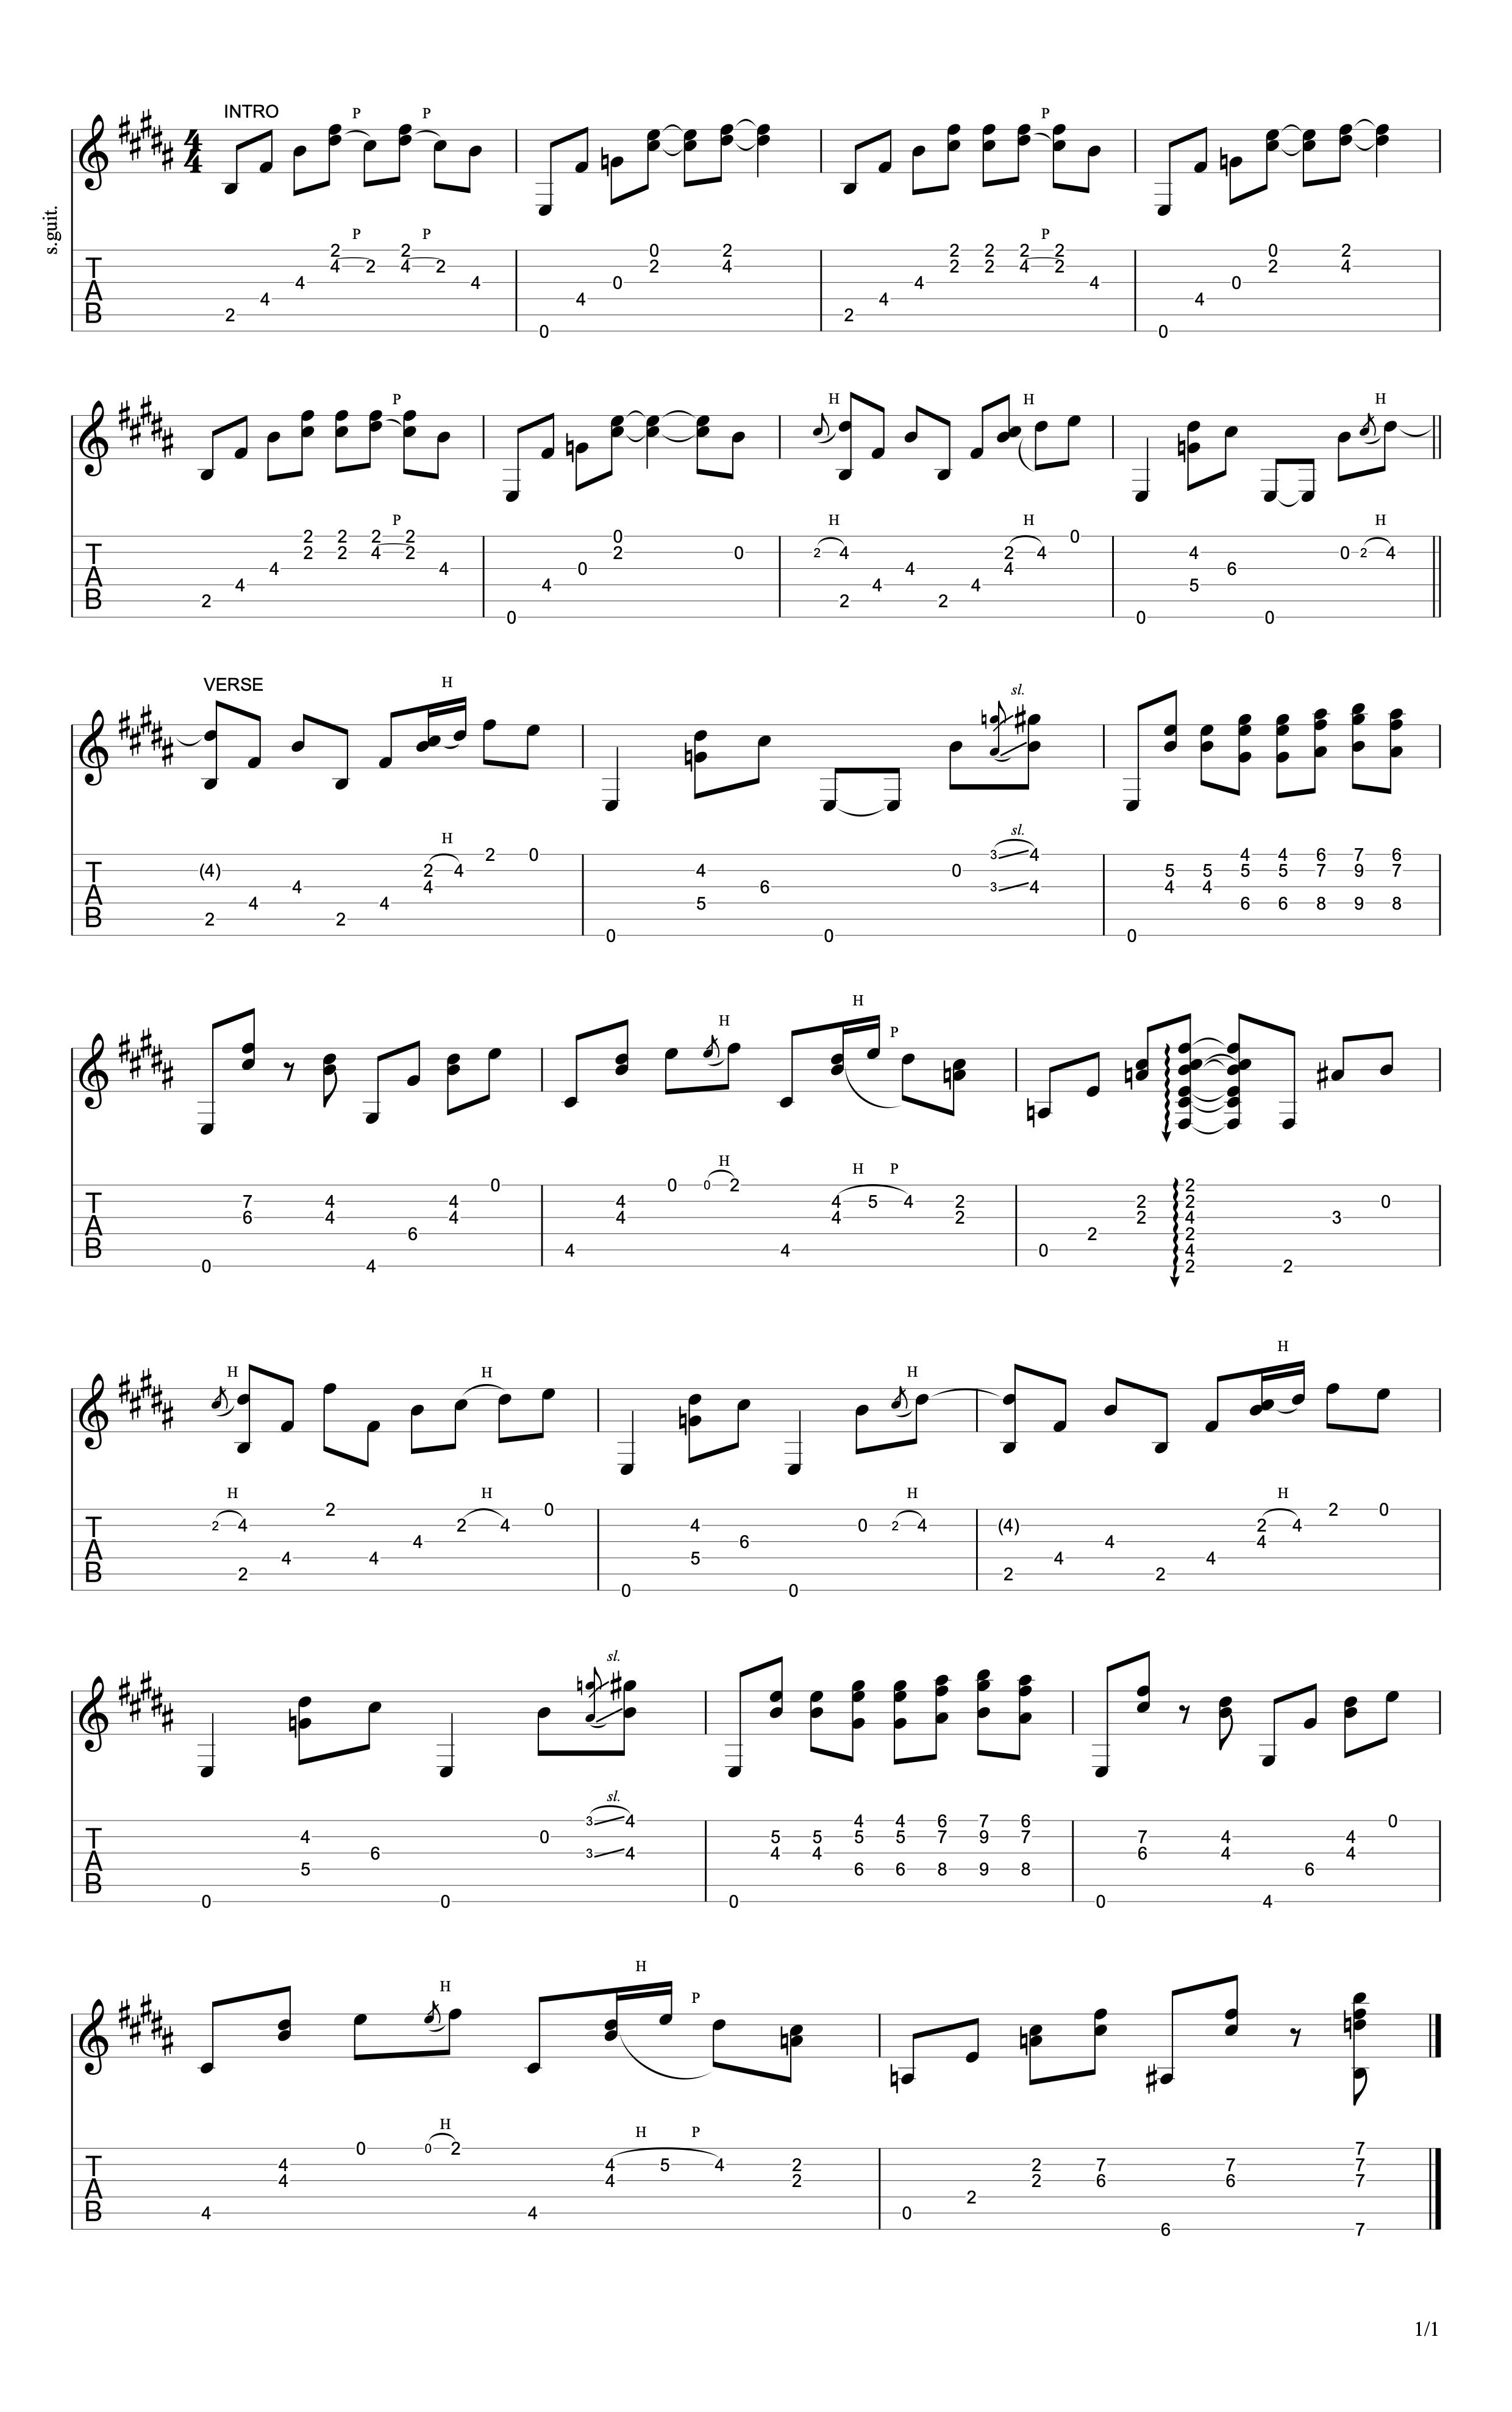 Ruby's Eyes Verse Guitar Tab